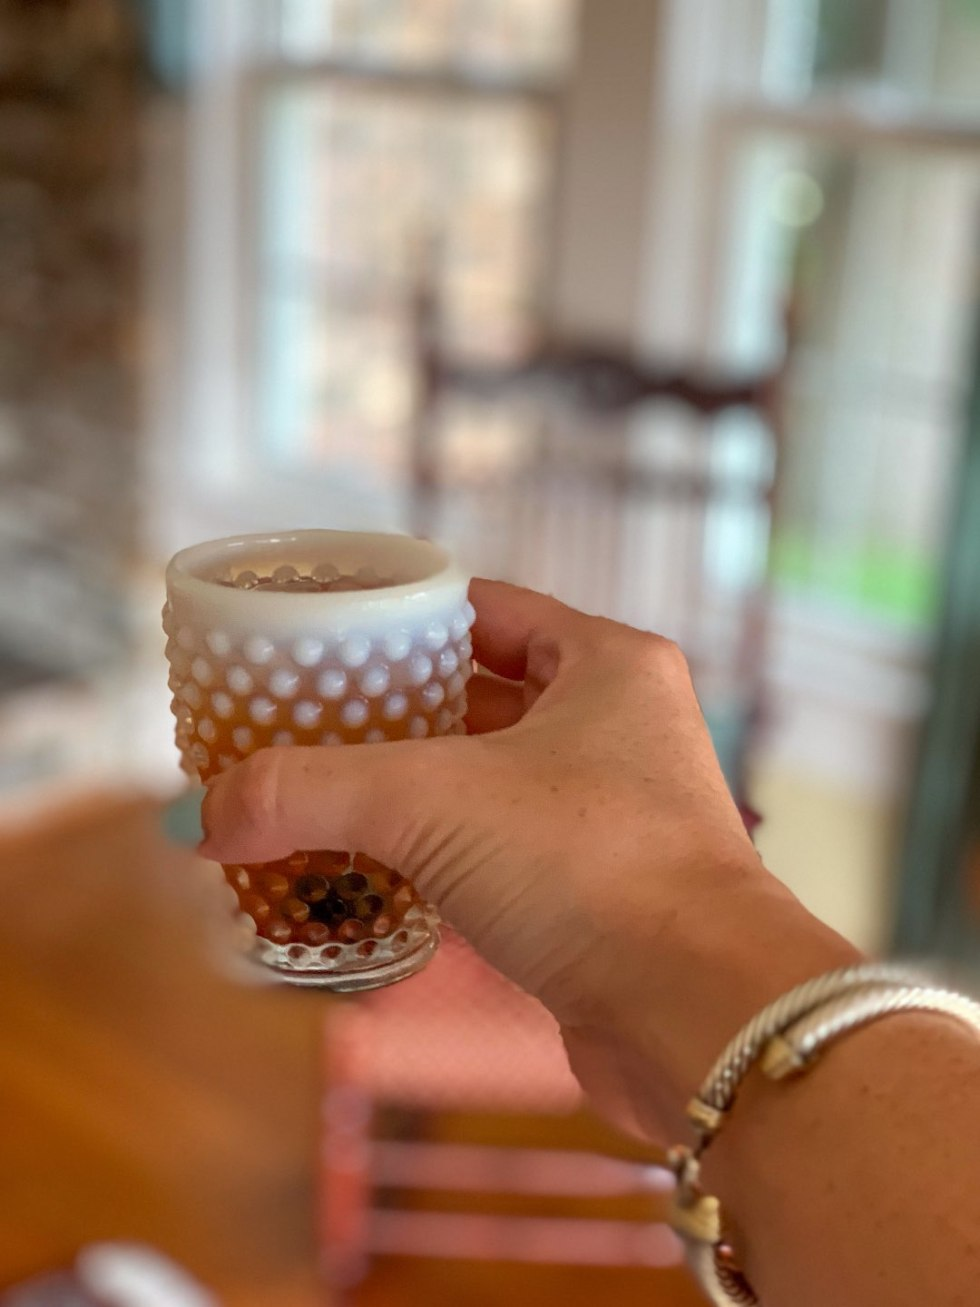 Welcome August + July 2019 Instagram Roundup - I'm Fixin' To - @mbg0112 | Welcome August + July 2019 Instagram Roundup by popular North Carolina life and style blog, I'm Fixin' To: image of woman holding a hobnail milk glass cup at Between Water and Main Bed and Breakfast.